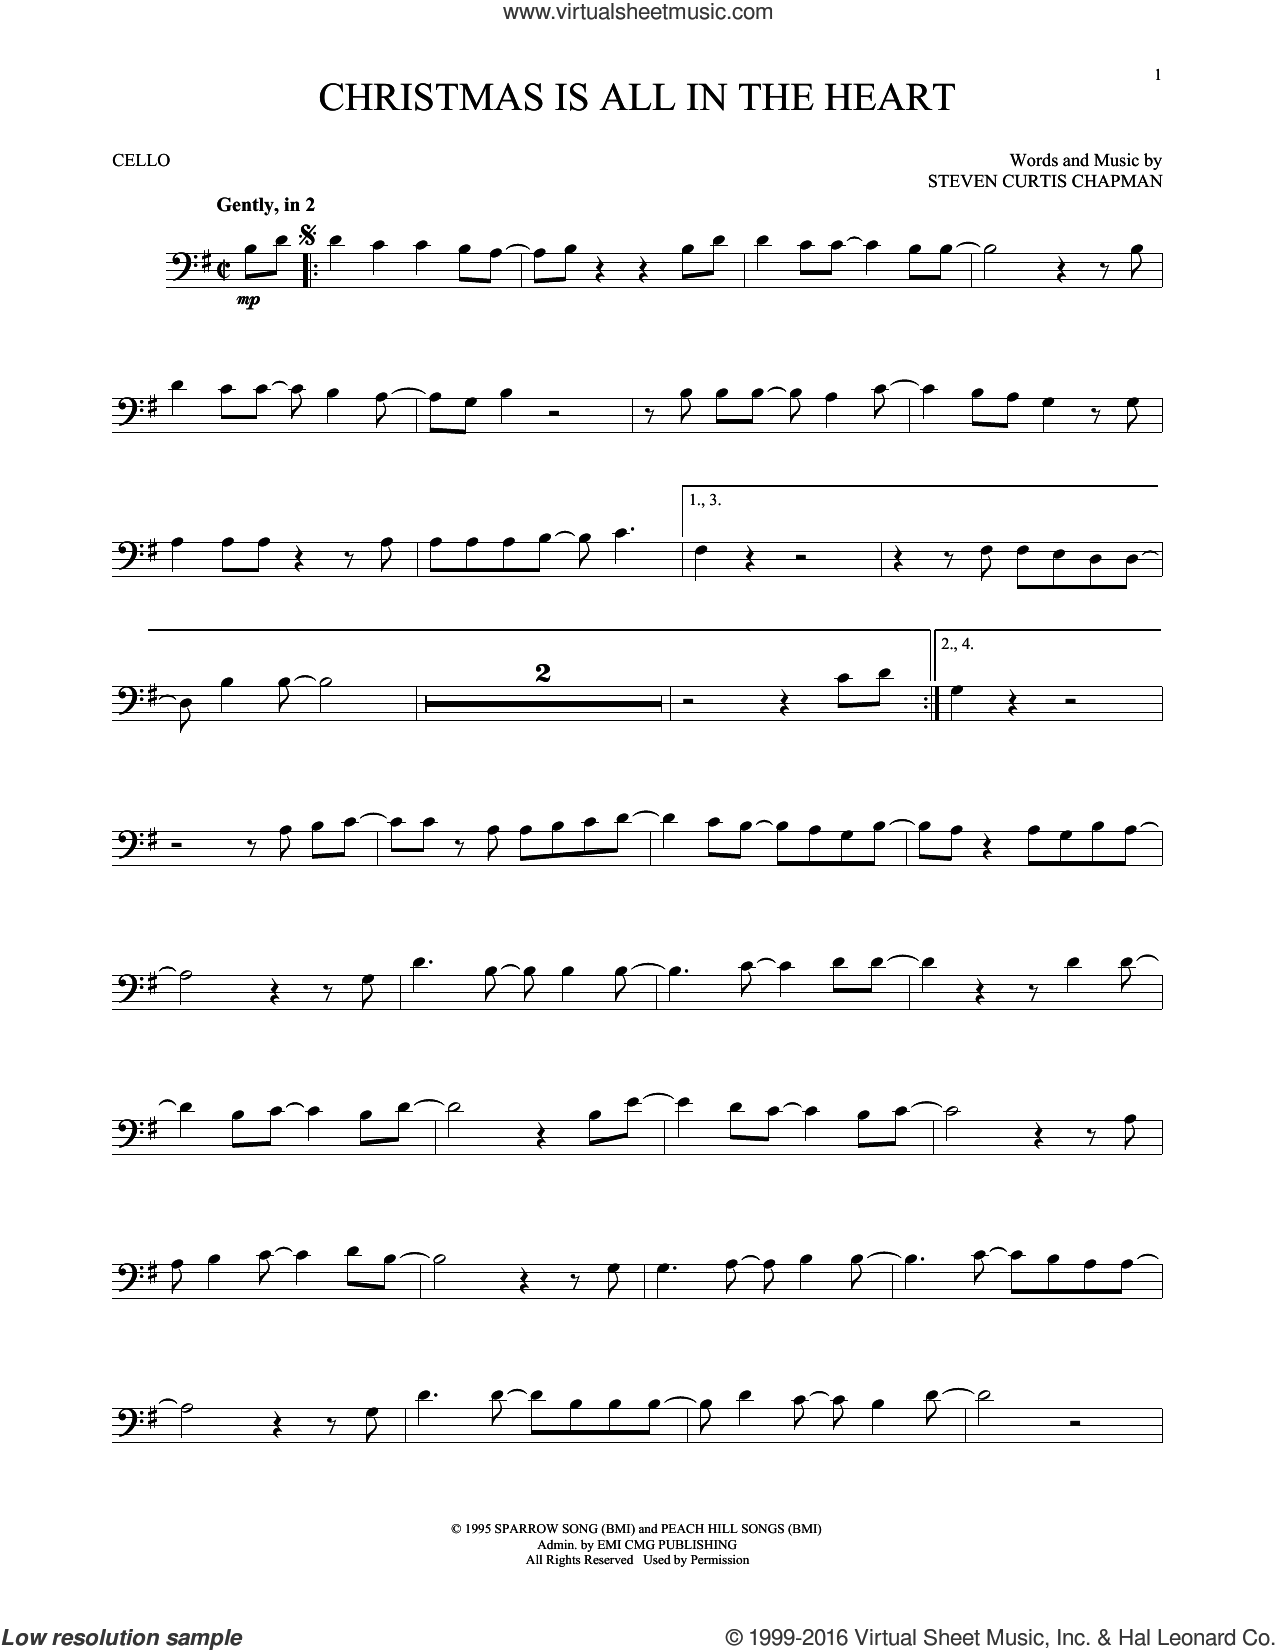 Christmas Is All In The Heart sheet music for cello solo by Steven Curtis Chapman, intermediate skill level